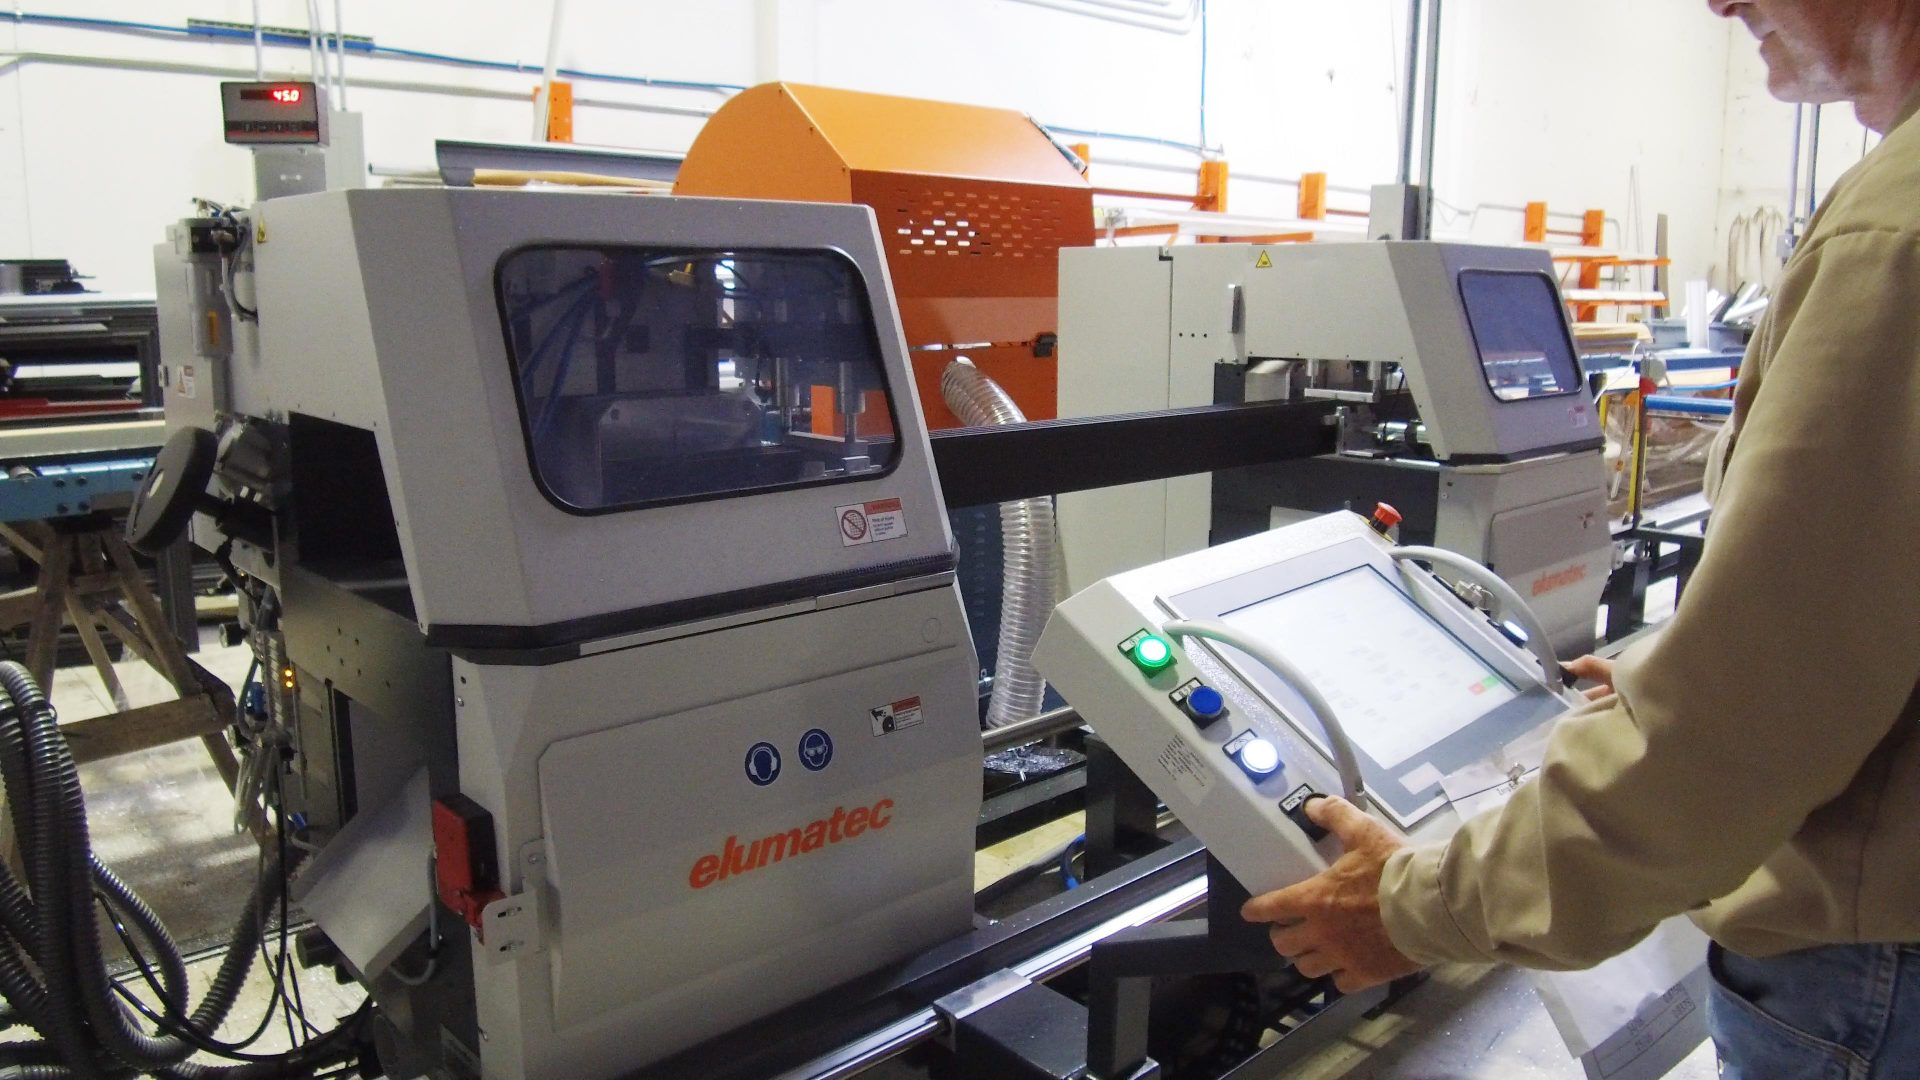 How We Keep it #MadeInAmerica – Robotic Saw